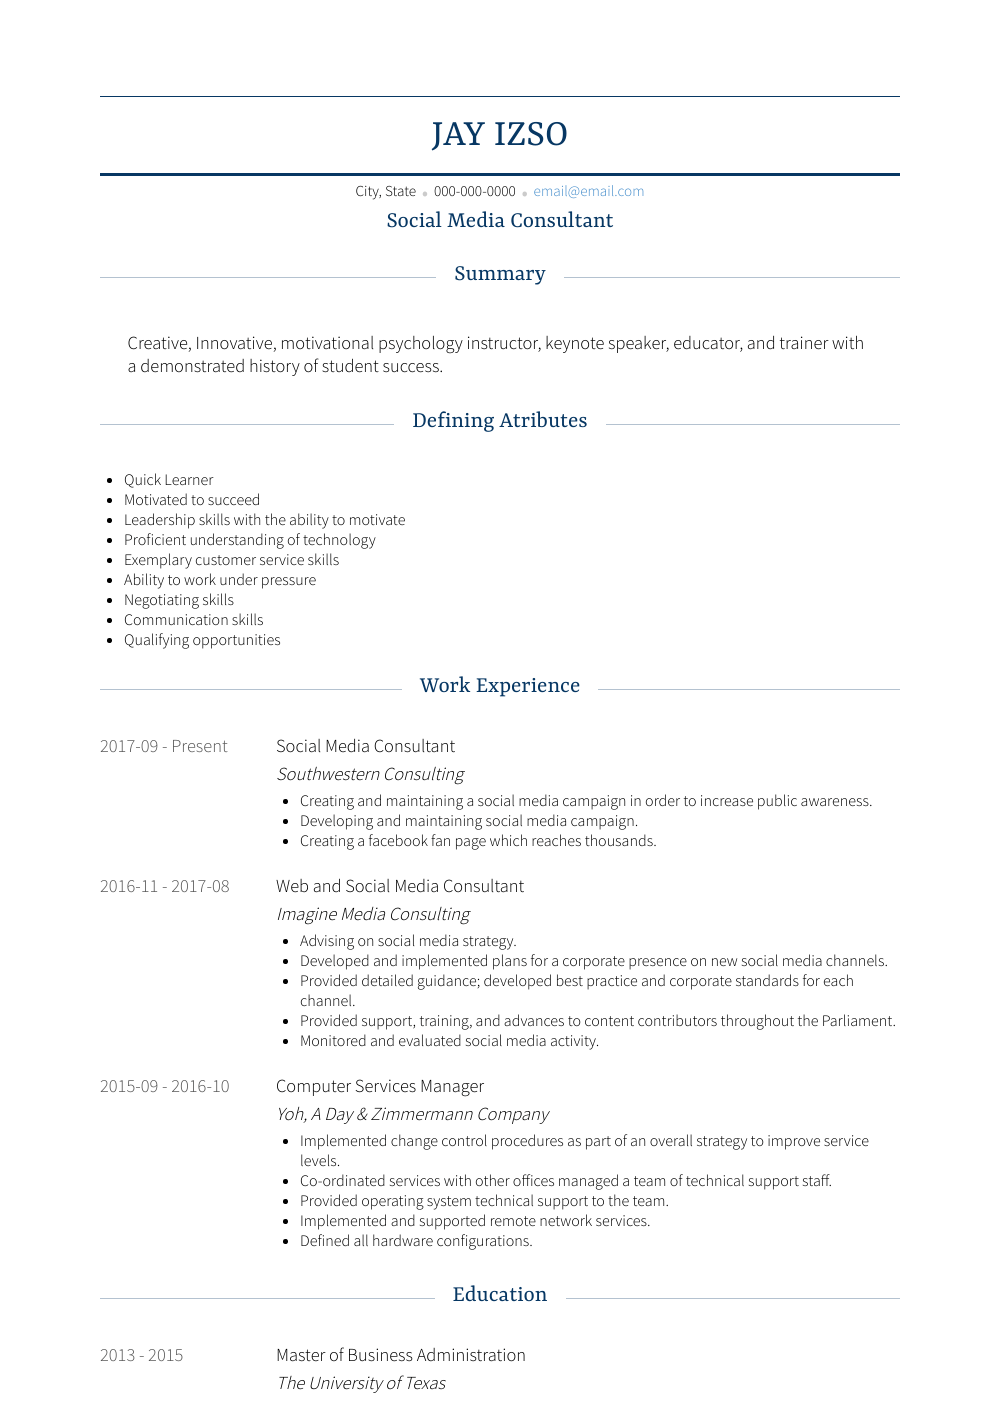 Social Media Consultant Resume Sample